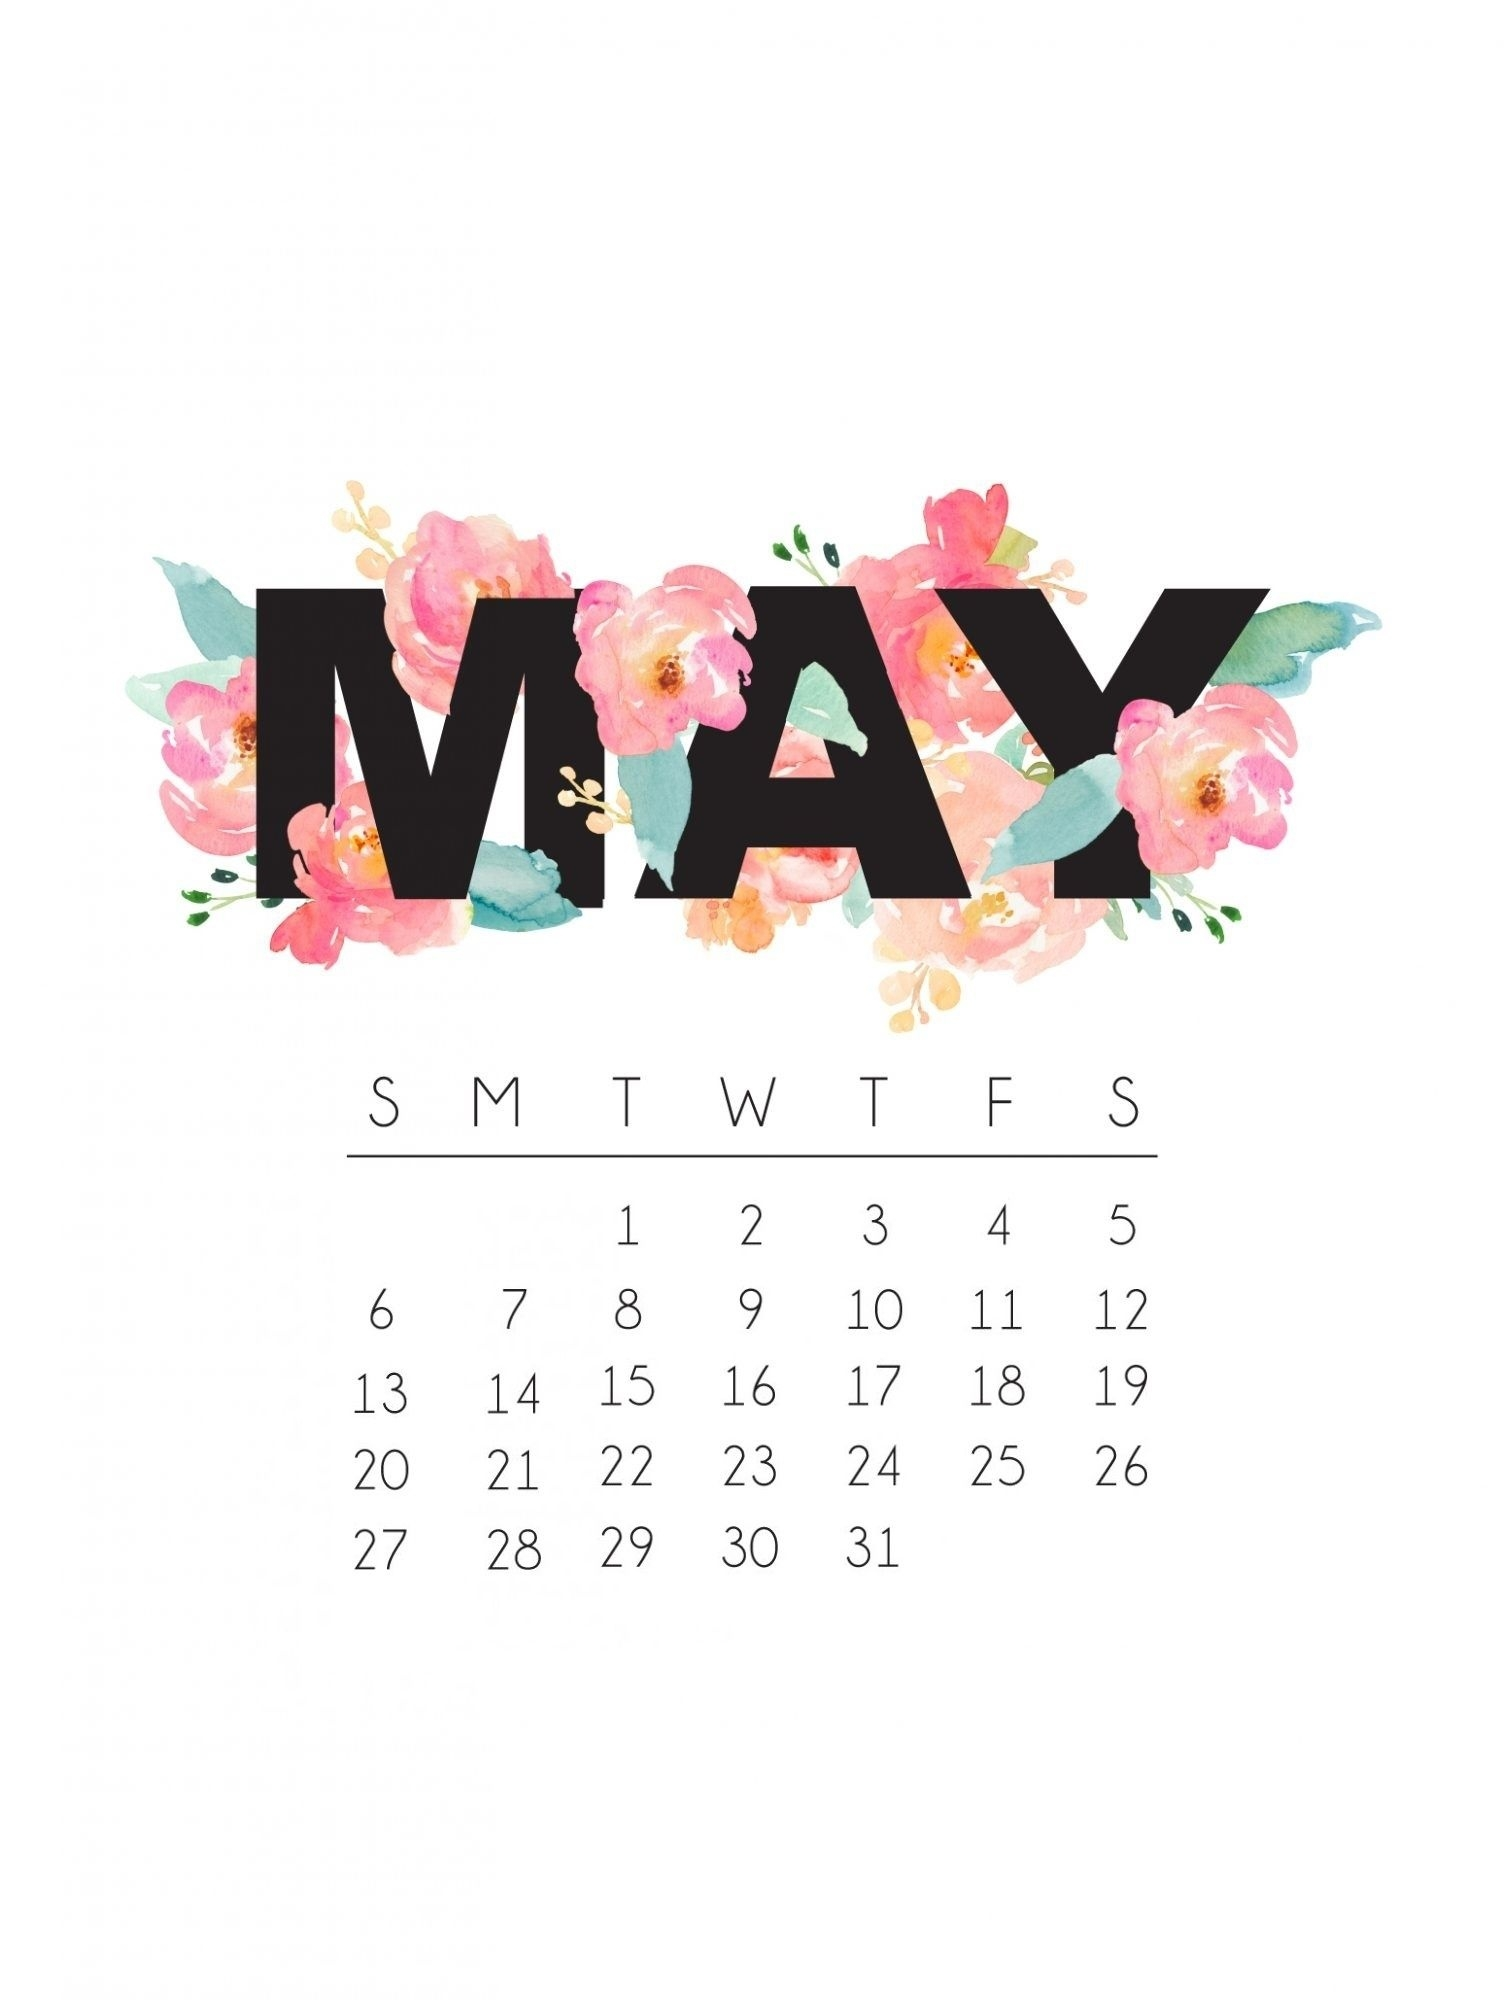 2018 Iphone Calendar Wallpaper Calendar 2018::may 2019 Iphone_Iphone 6 Calendar Printing